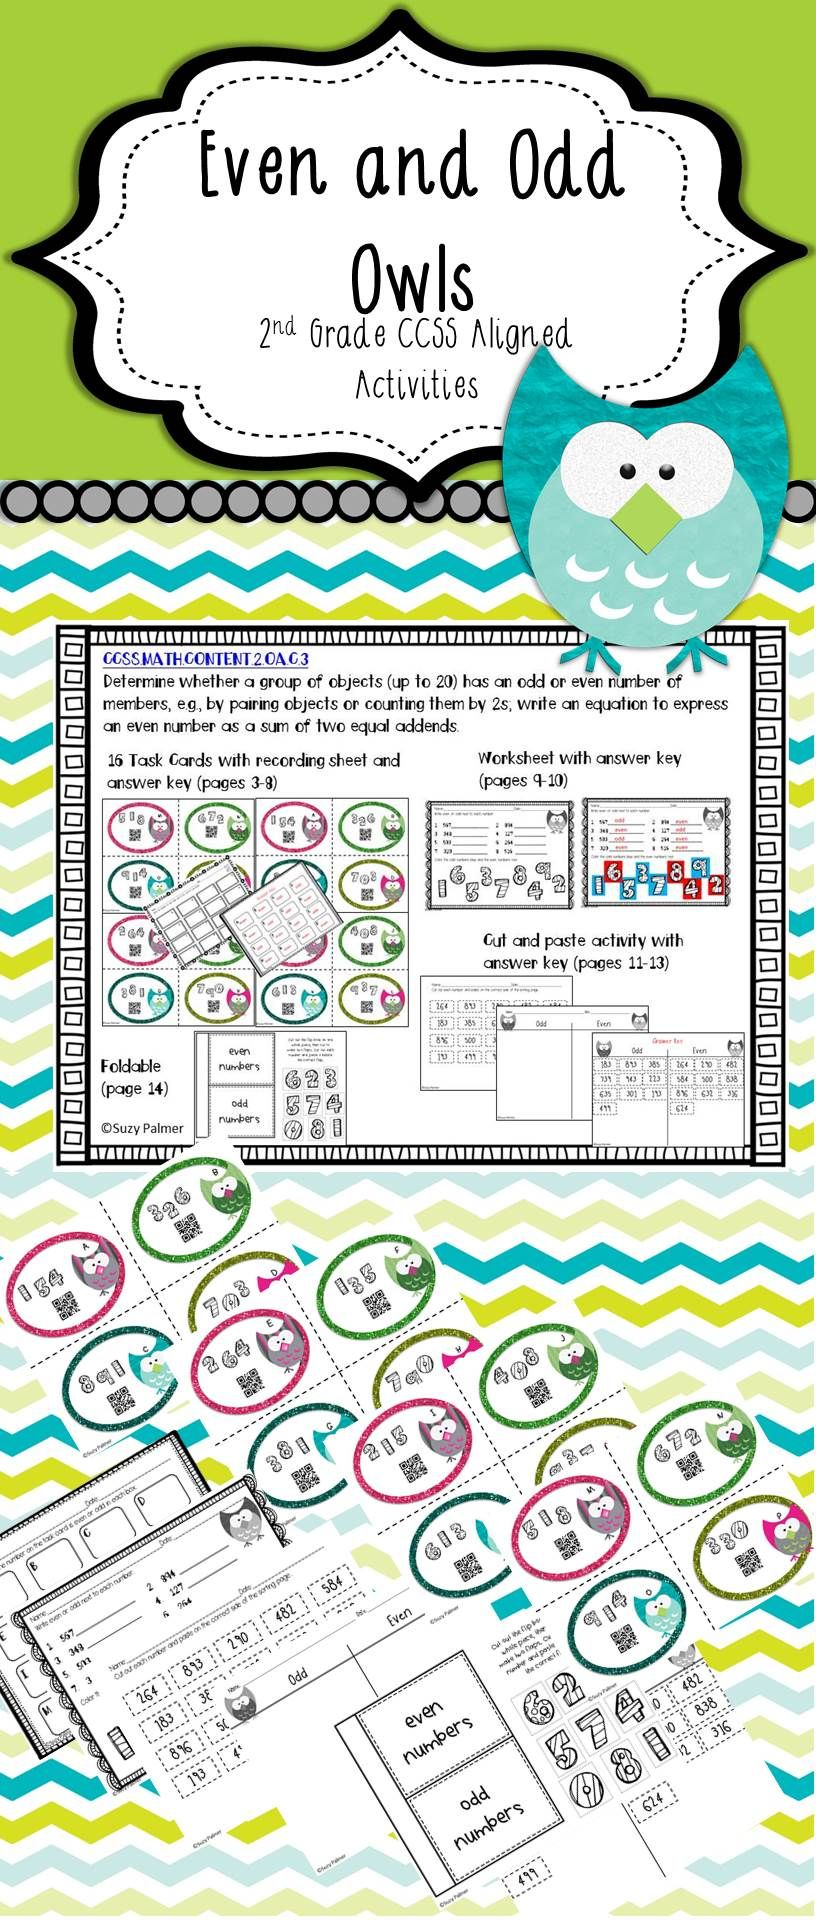 Even and odd owls 2nd ccss activities flap book even